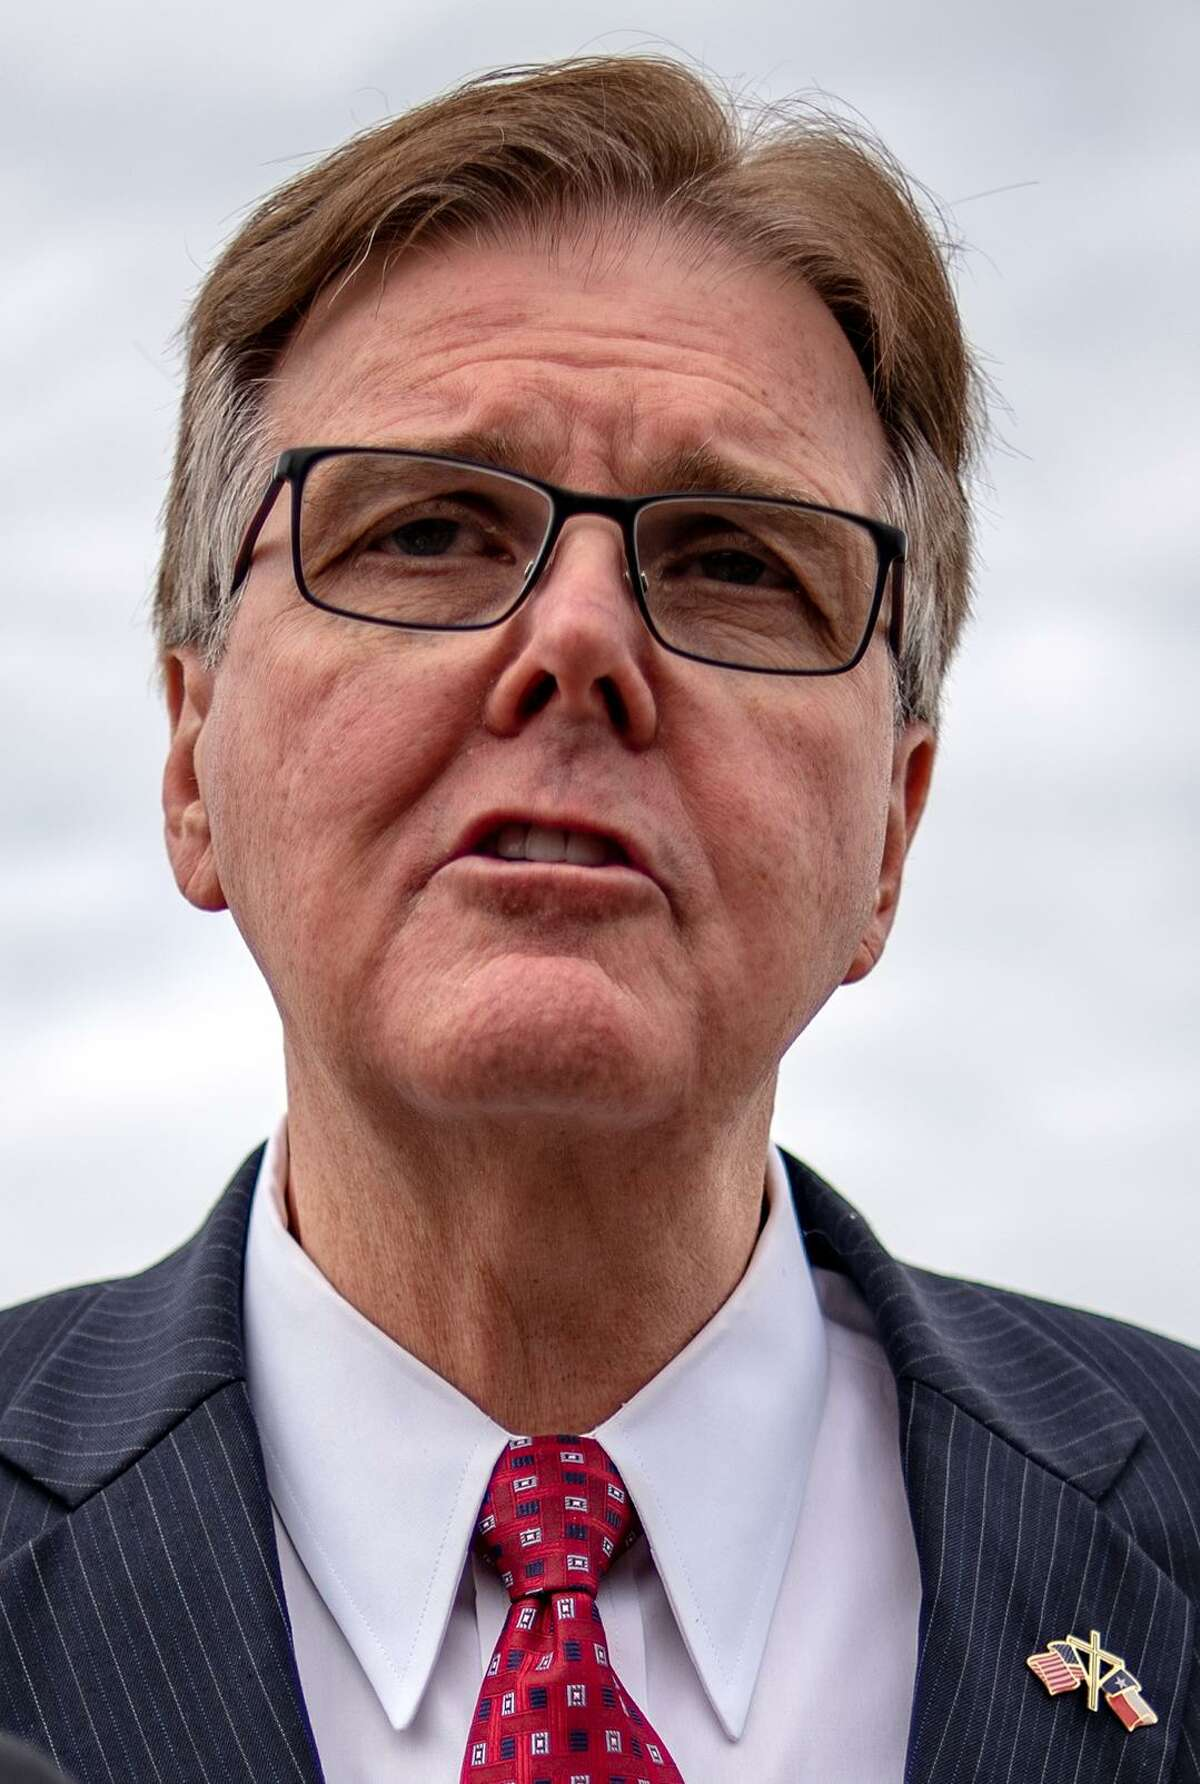 """Dan Patrick, Lt. Governor of Texas, speaks to members of the media at McAllen-Miller International Airport in McAllen, Texas, U.S., on Thursday, Jan. 10, 2019. President Donald Trump's decision to bid """"bye bye"""" to House Speaker†Nancy Pelosi†and storm out of a White House meeting brought relations between the president and Democrats to a new low just as the impact of the nearly three-week government shutdown was set to intensify. Photographer: Sergio Flores/Bloomberg"""